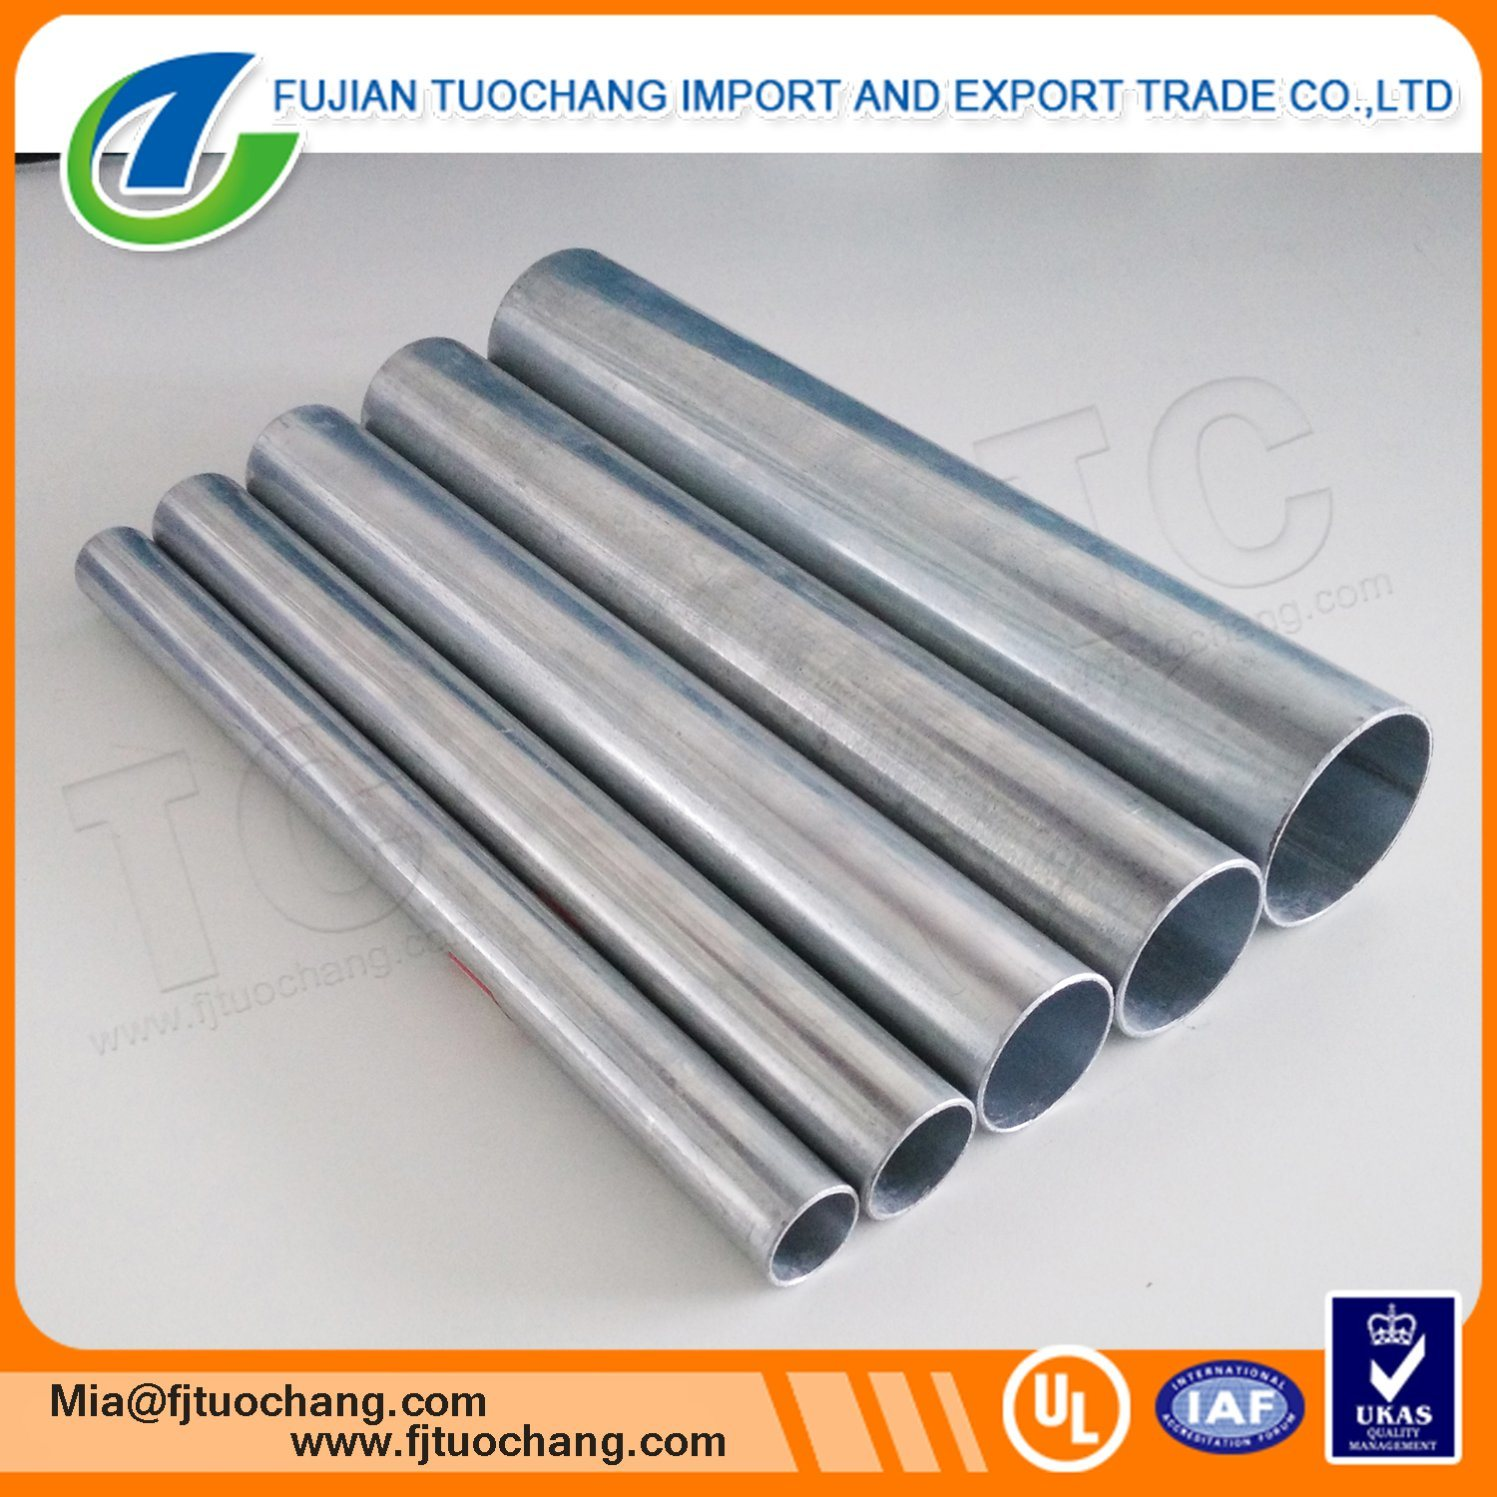 China Hot Dip Galvanized Electrical Cable Wiring Conduit With Metal Steel Pipe